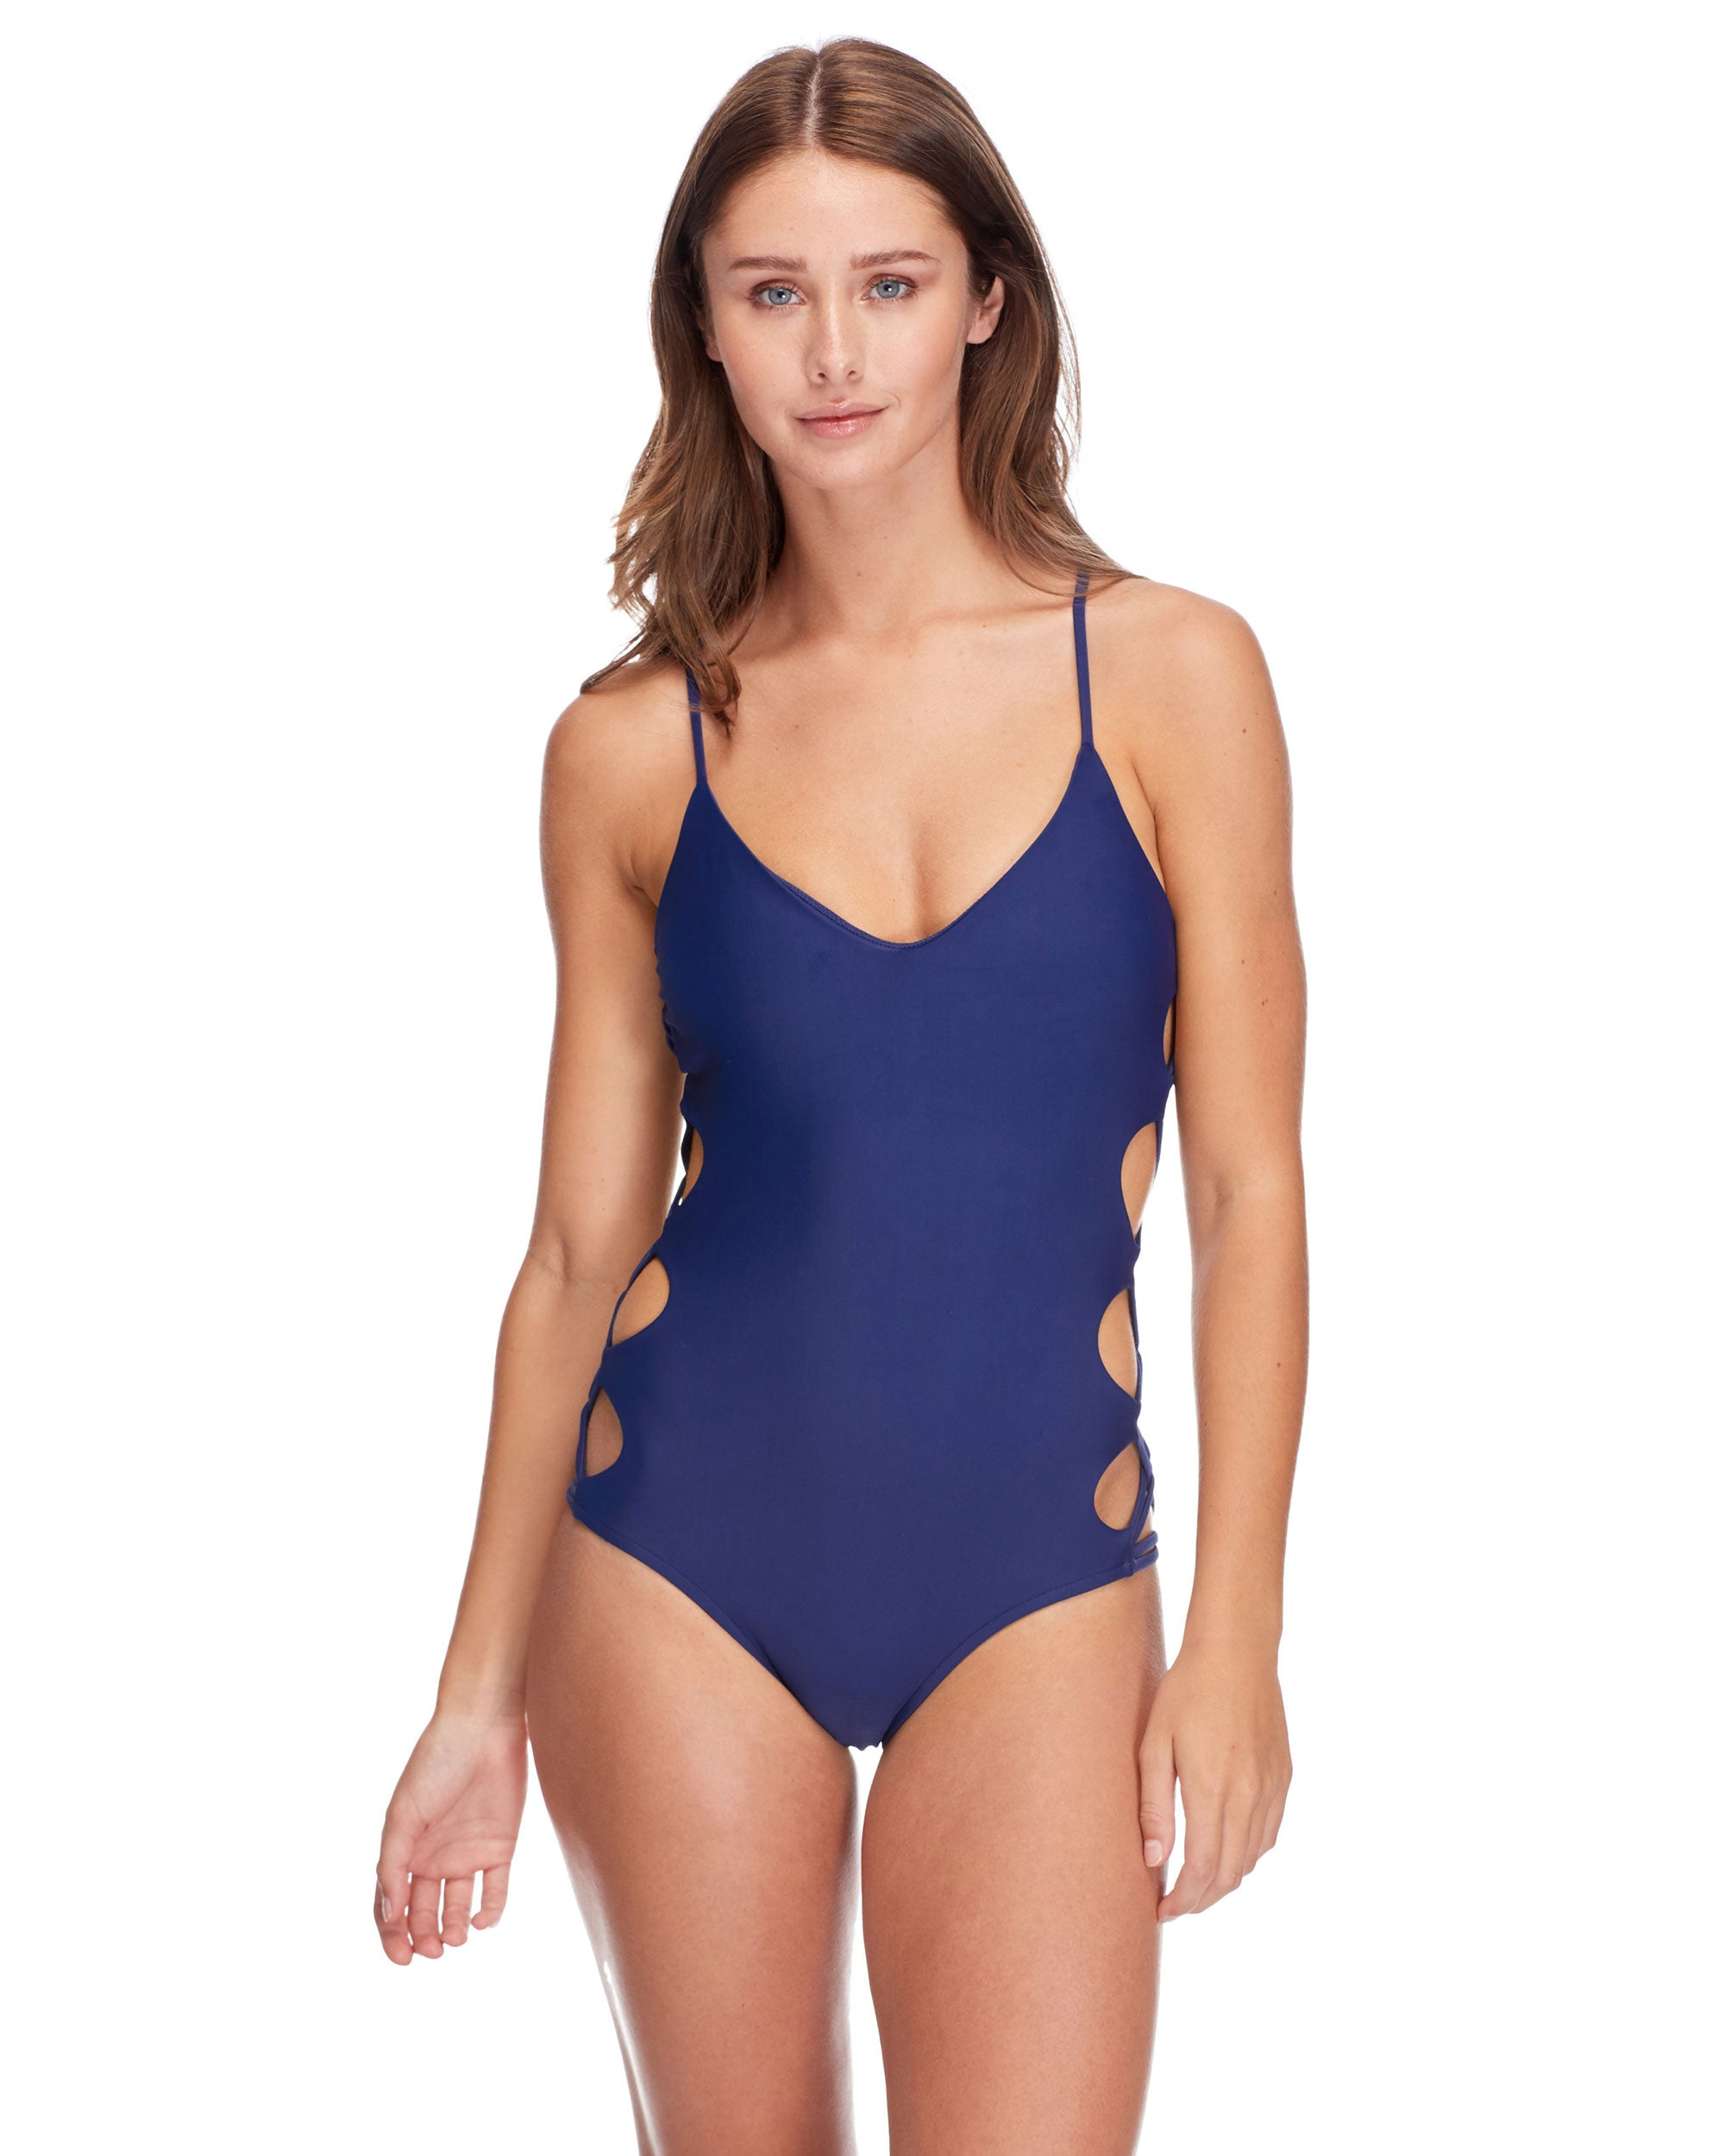 Smoothies Crissy One-Piece Swimsuit - Midnight